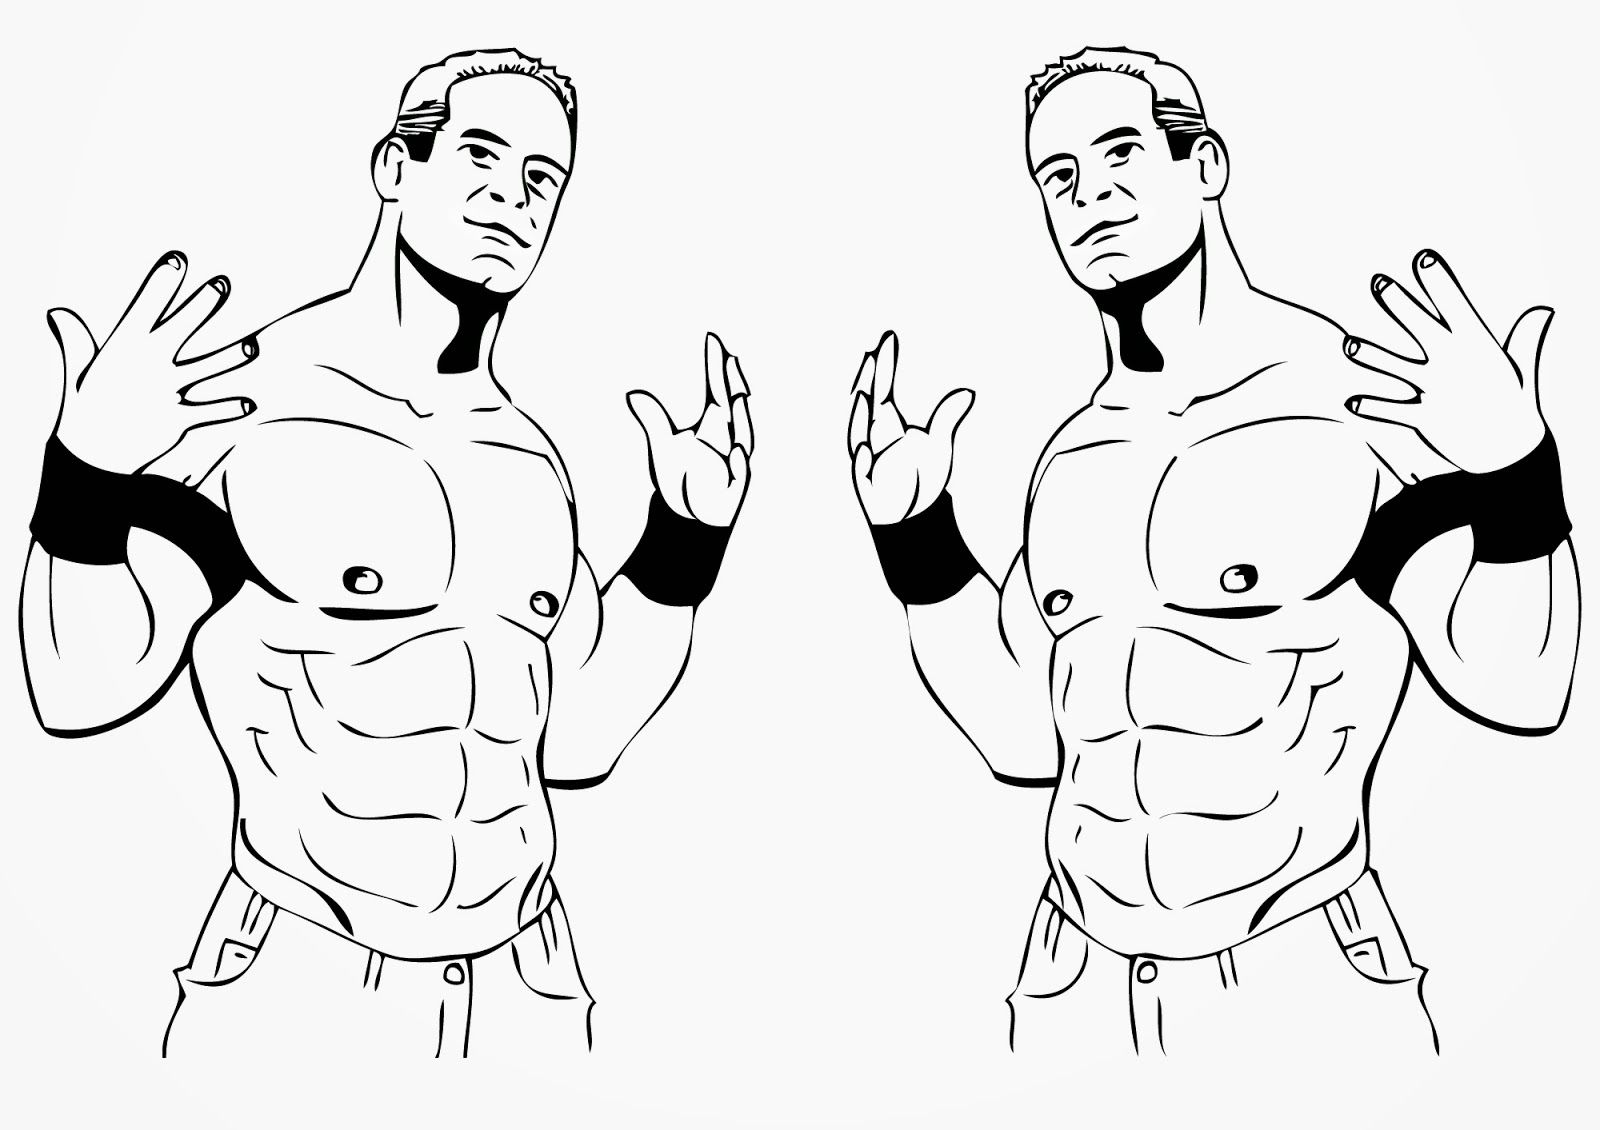 John Cena Coloring Page - Coloring Home